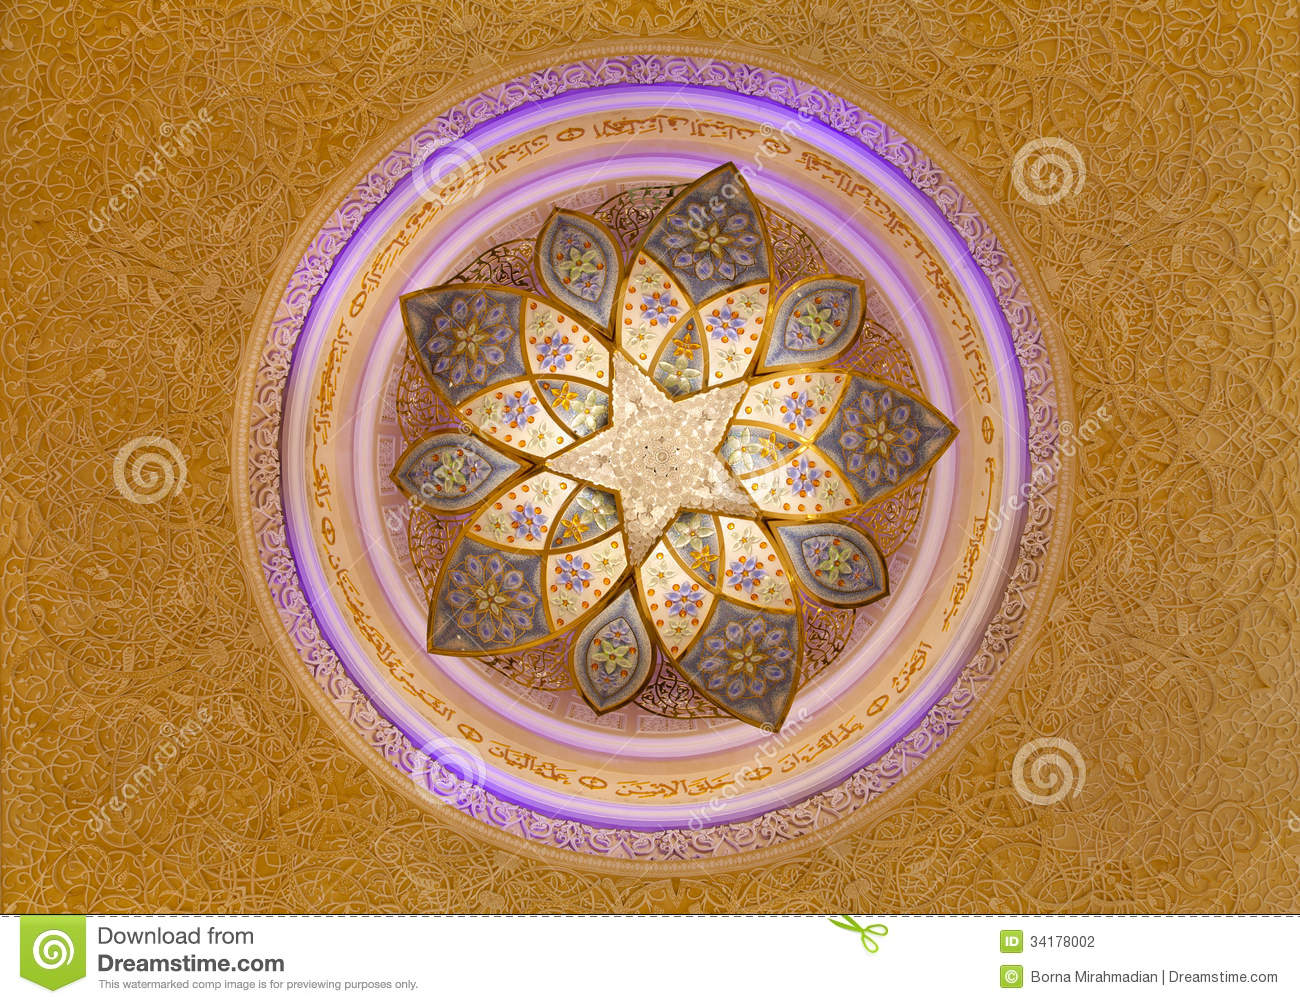 Sheikh zayed mosque chandelier and ceiling decorations for Al manzool decoration abu dhabi